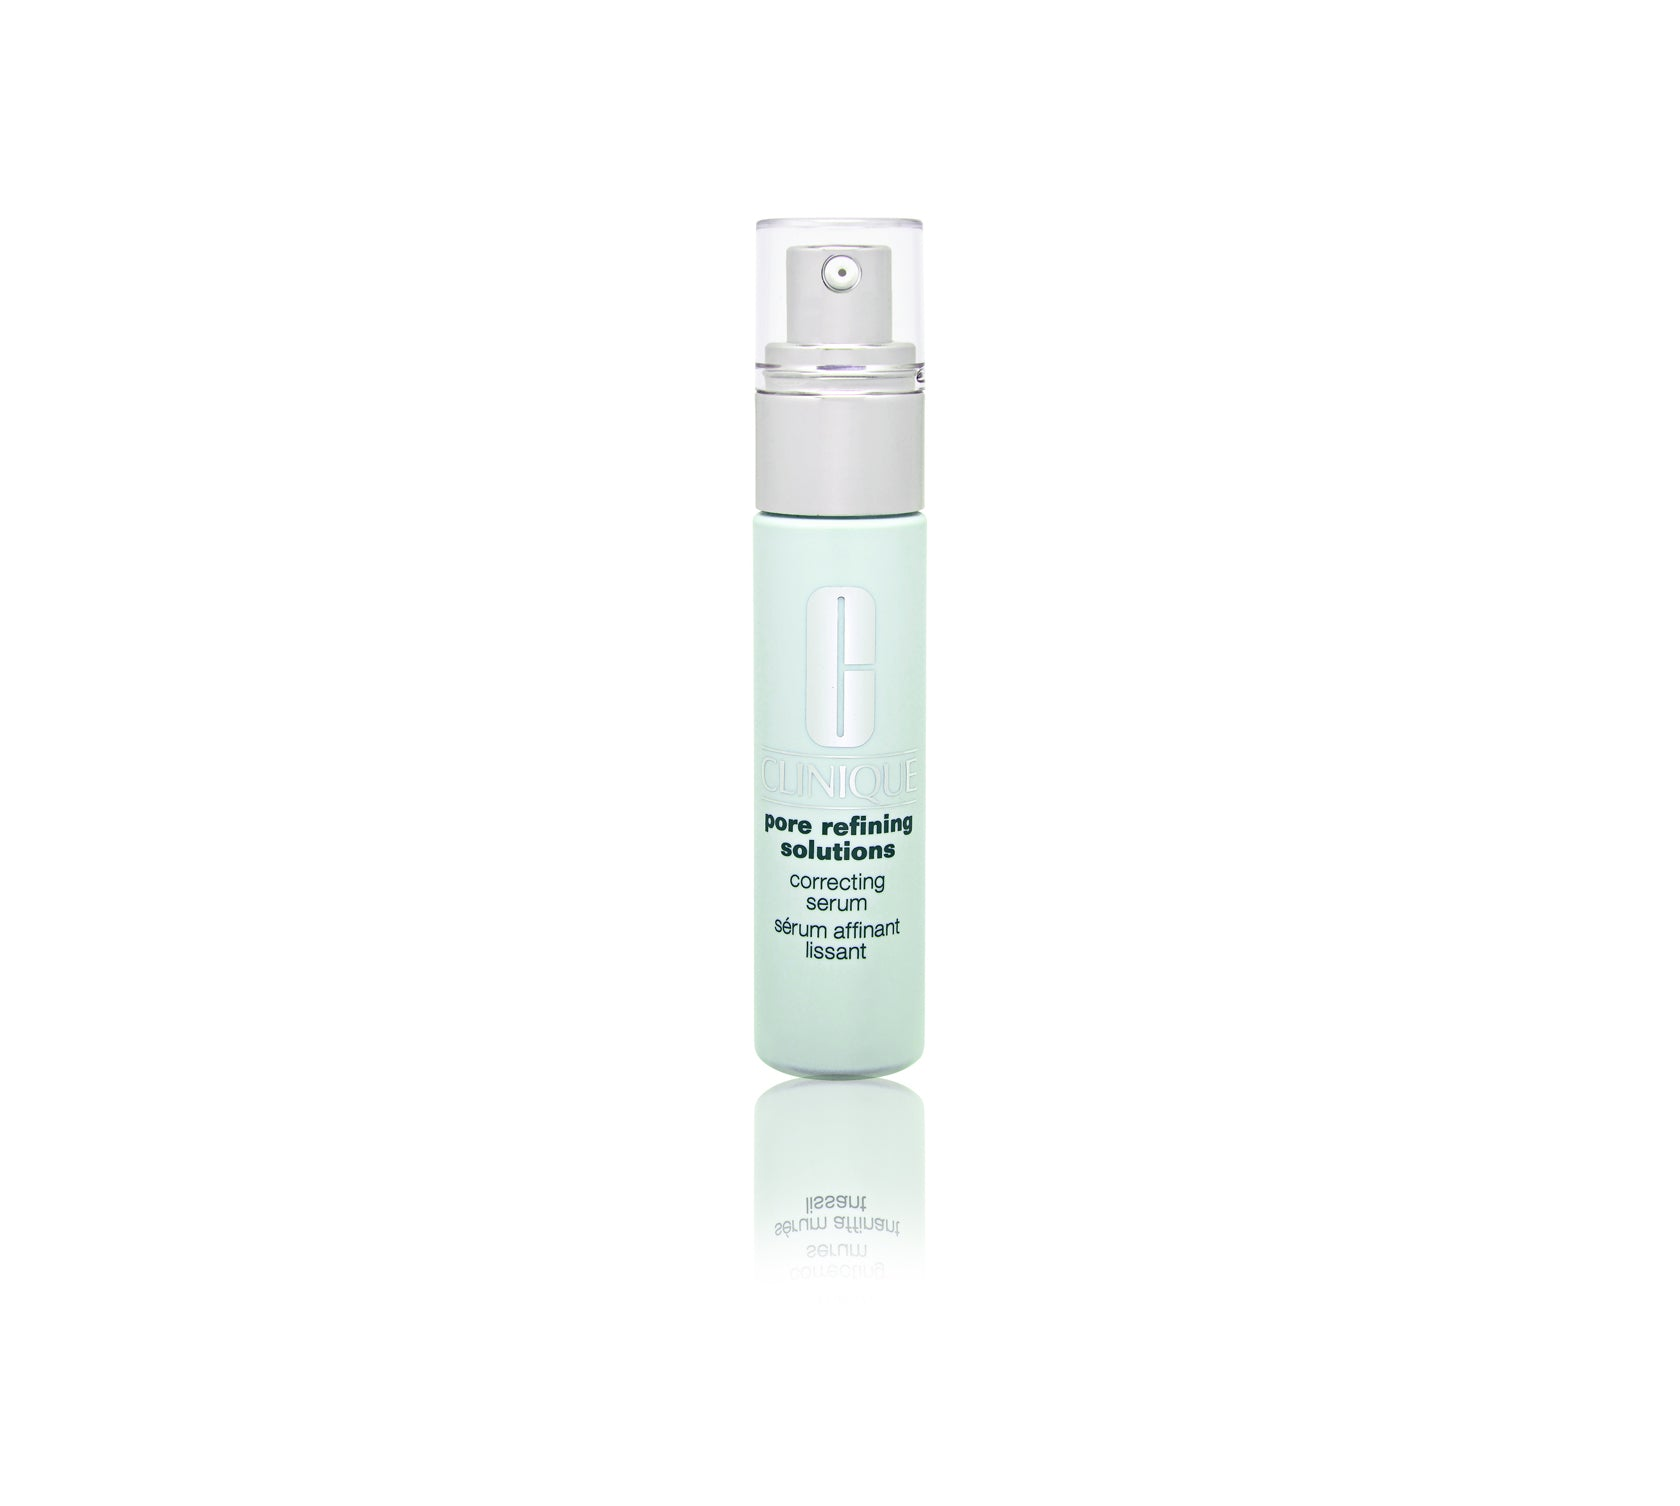 pore-refining-solutions-correcting-serum-all-skin-types